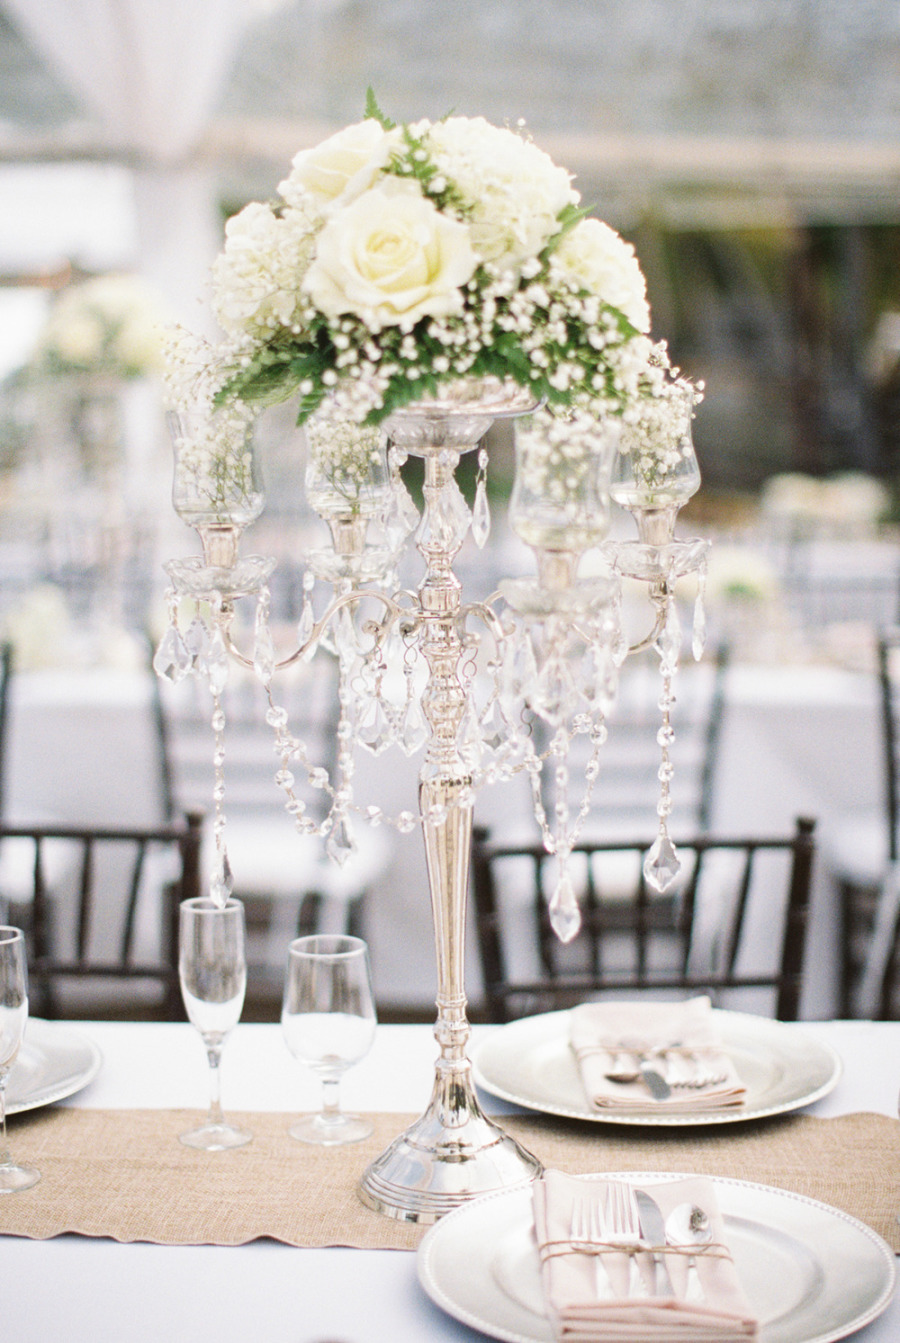 Wedding Centerpieces { Extravagant or Simple }